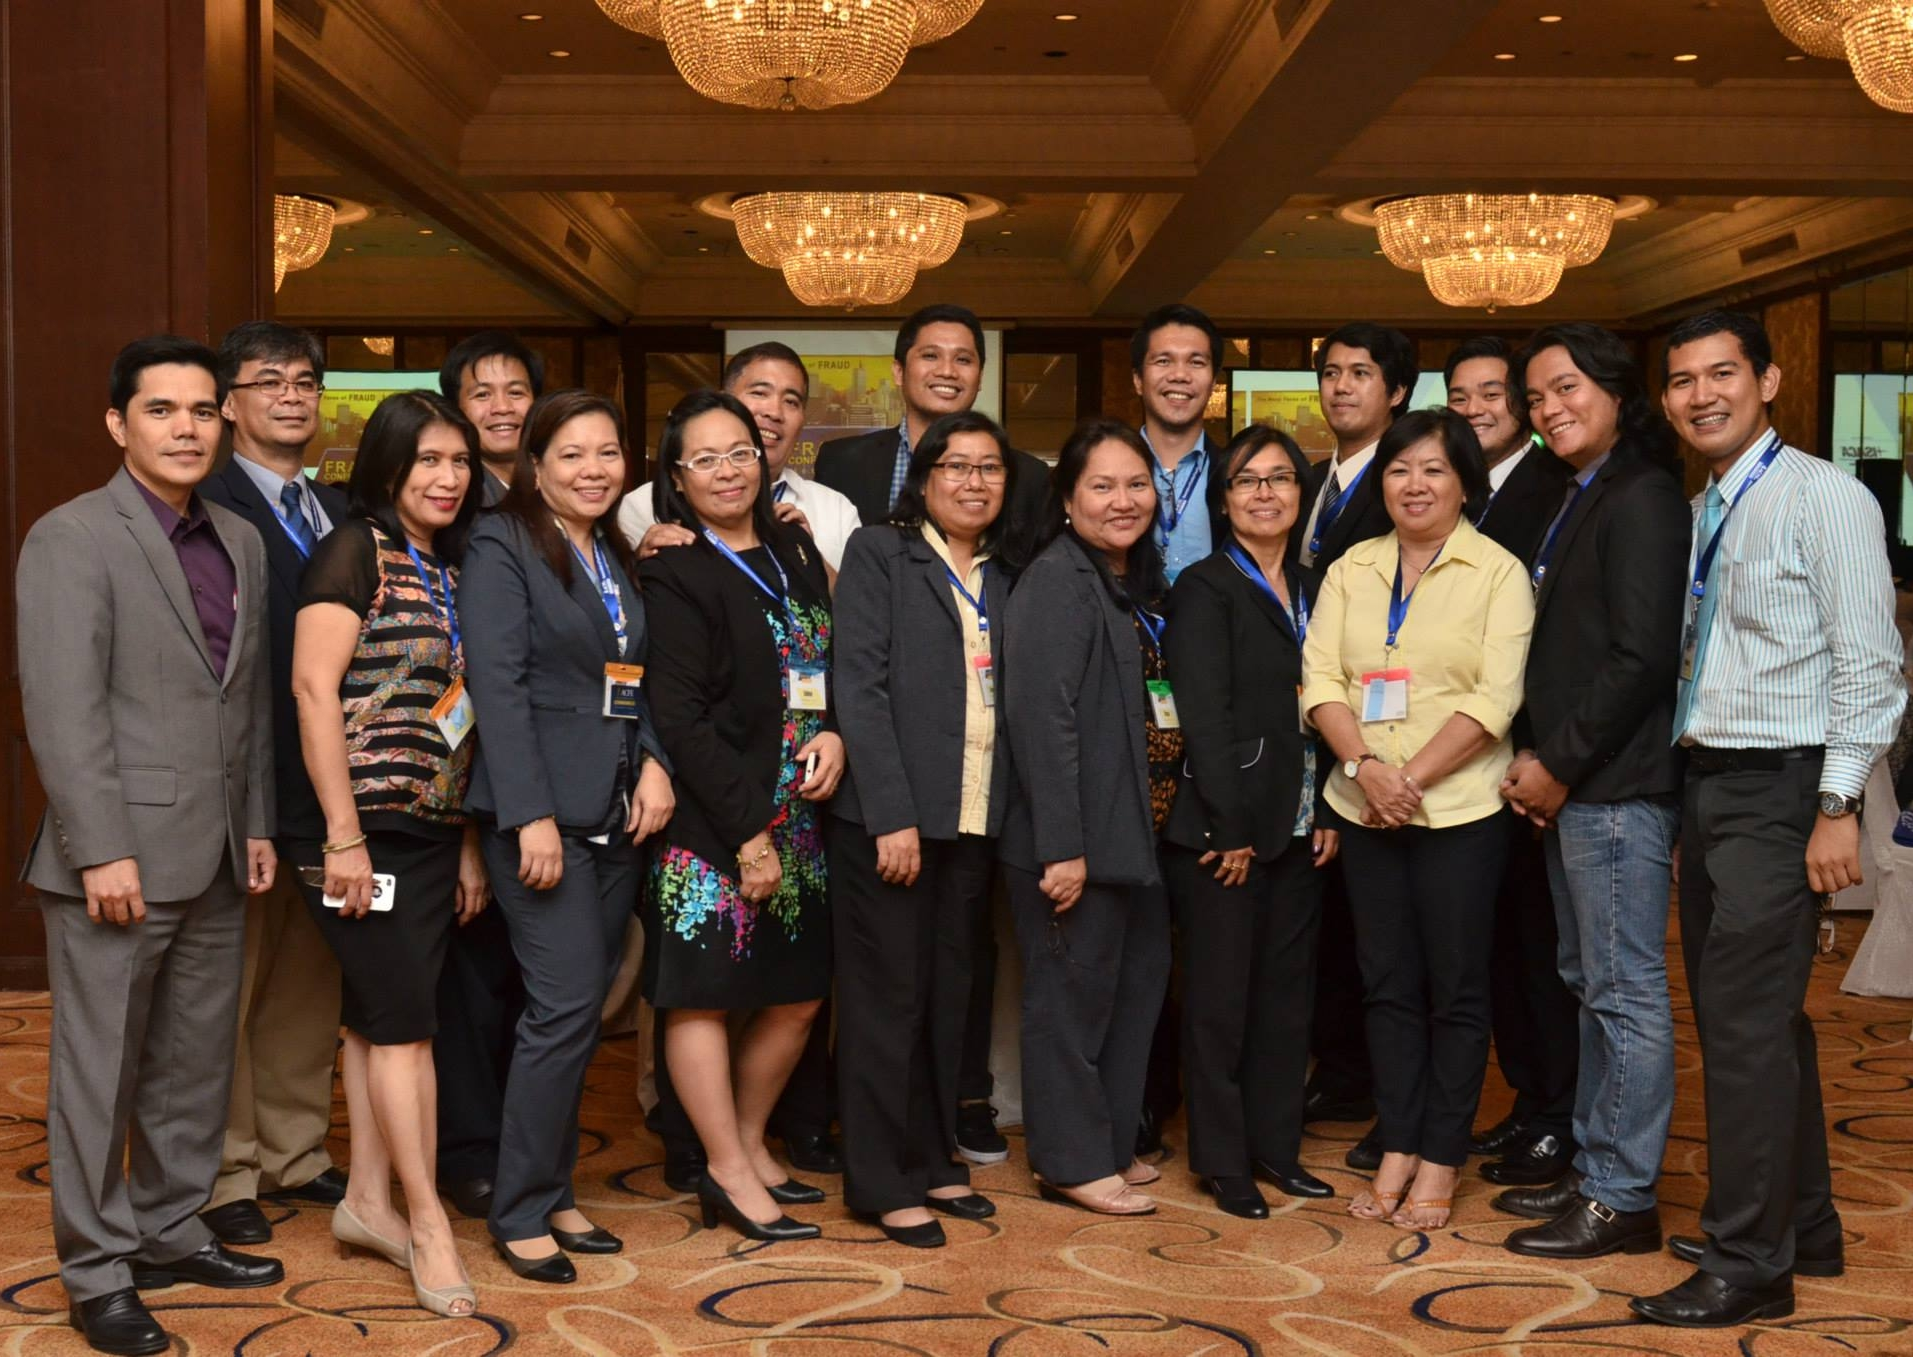 CFEs from the Philippines Commission on Audit at Fraud Conference Manila.